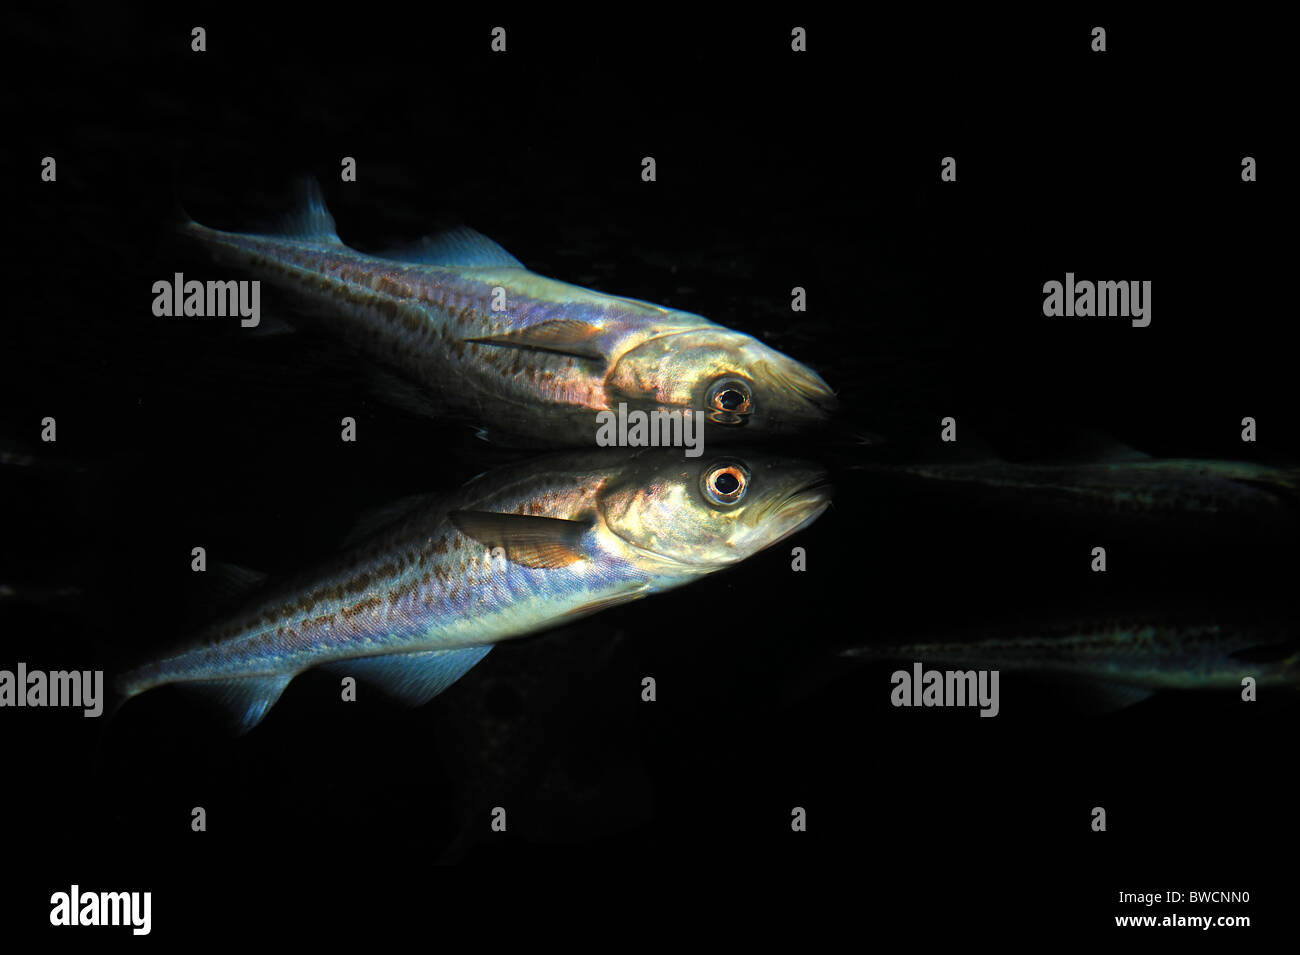 Walleye pollock, Theragra chalcogramma, captive - Stock Image